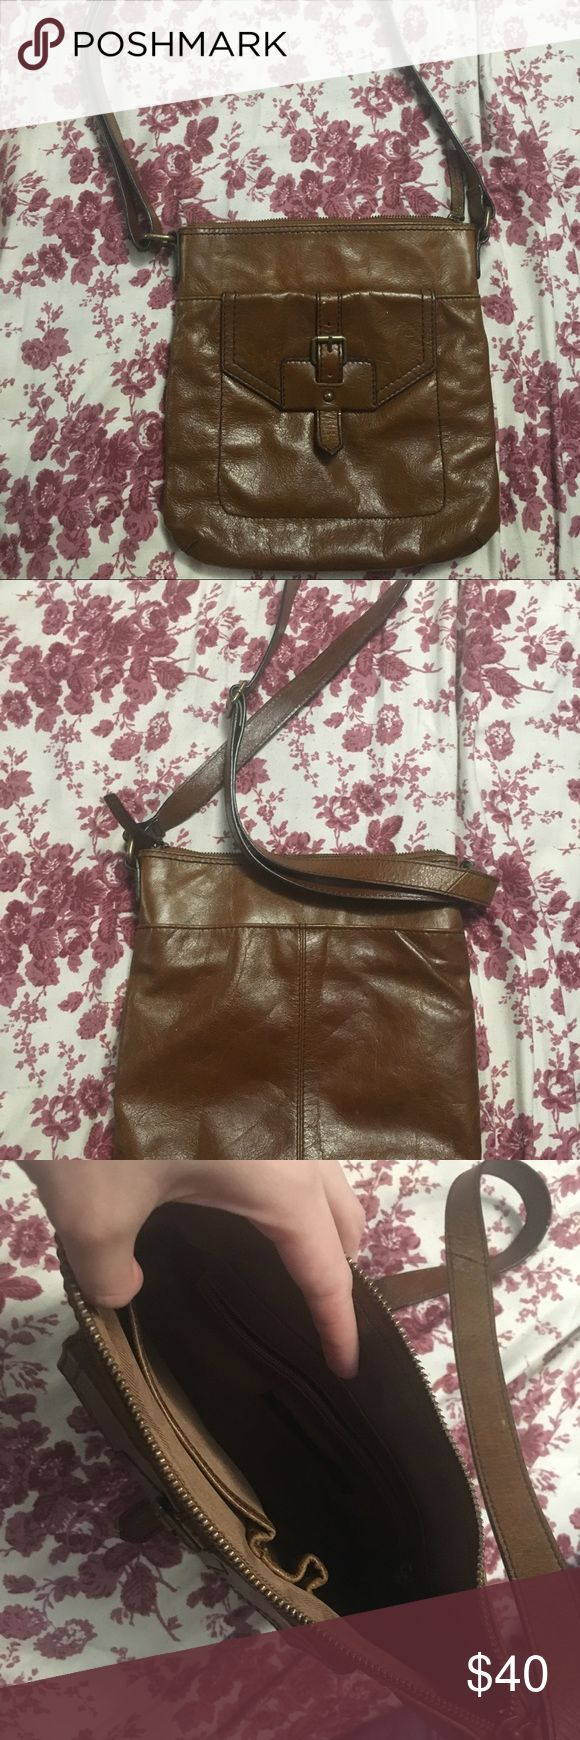 Marks & Spencer cross body real leather bag Real leather. Vintage. Brown leather. Good condition Marks & Spencer Bags Crossbody Bags